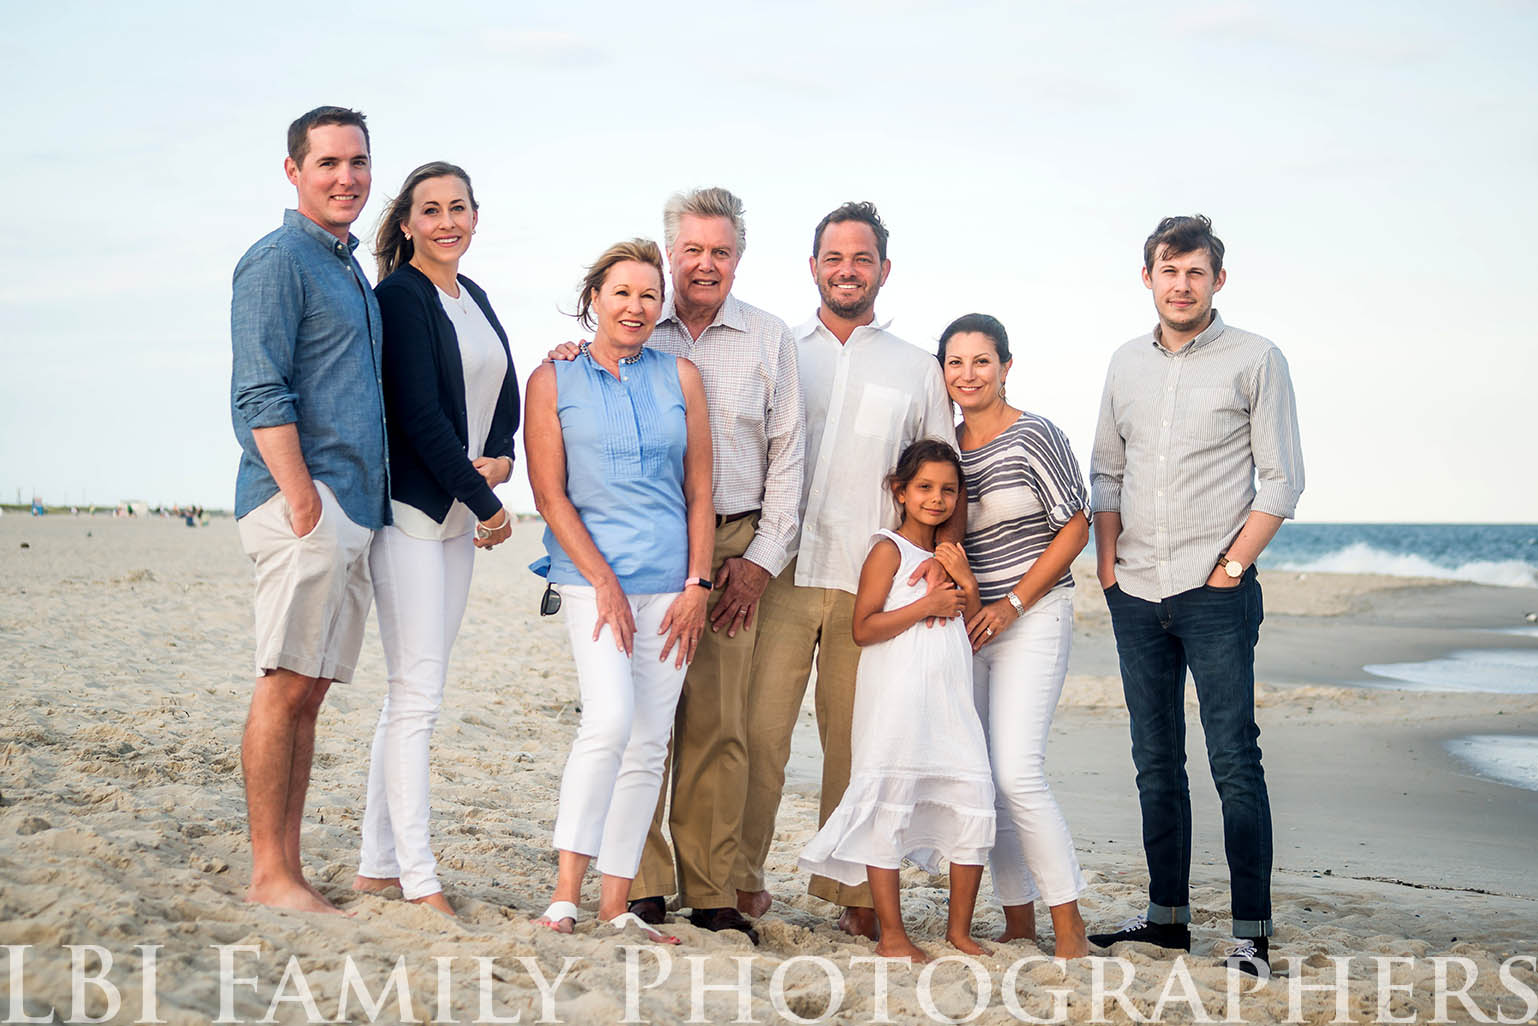 Lbi family photographers the best family beach for Best family pictures